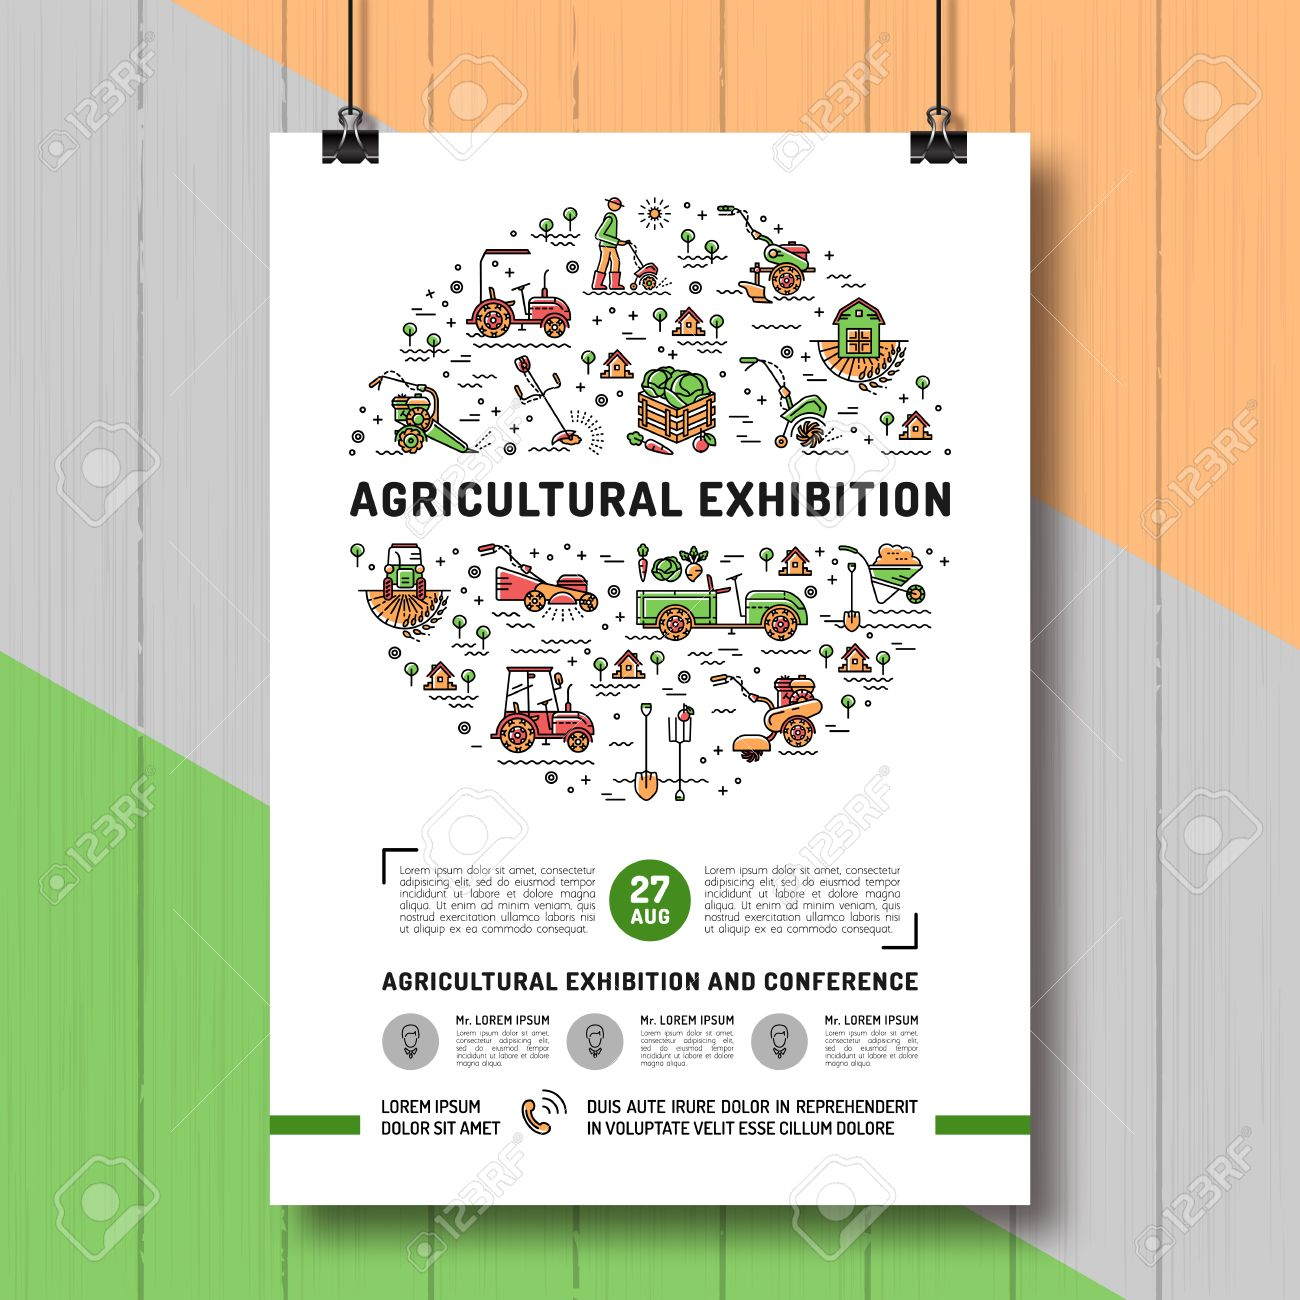 mockup flyer images stock pictures royalty mockup flyer mockup flyer agricultural exhibition design poster or card template mock up flyer